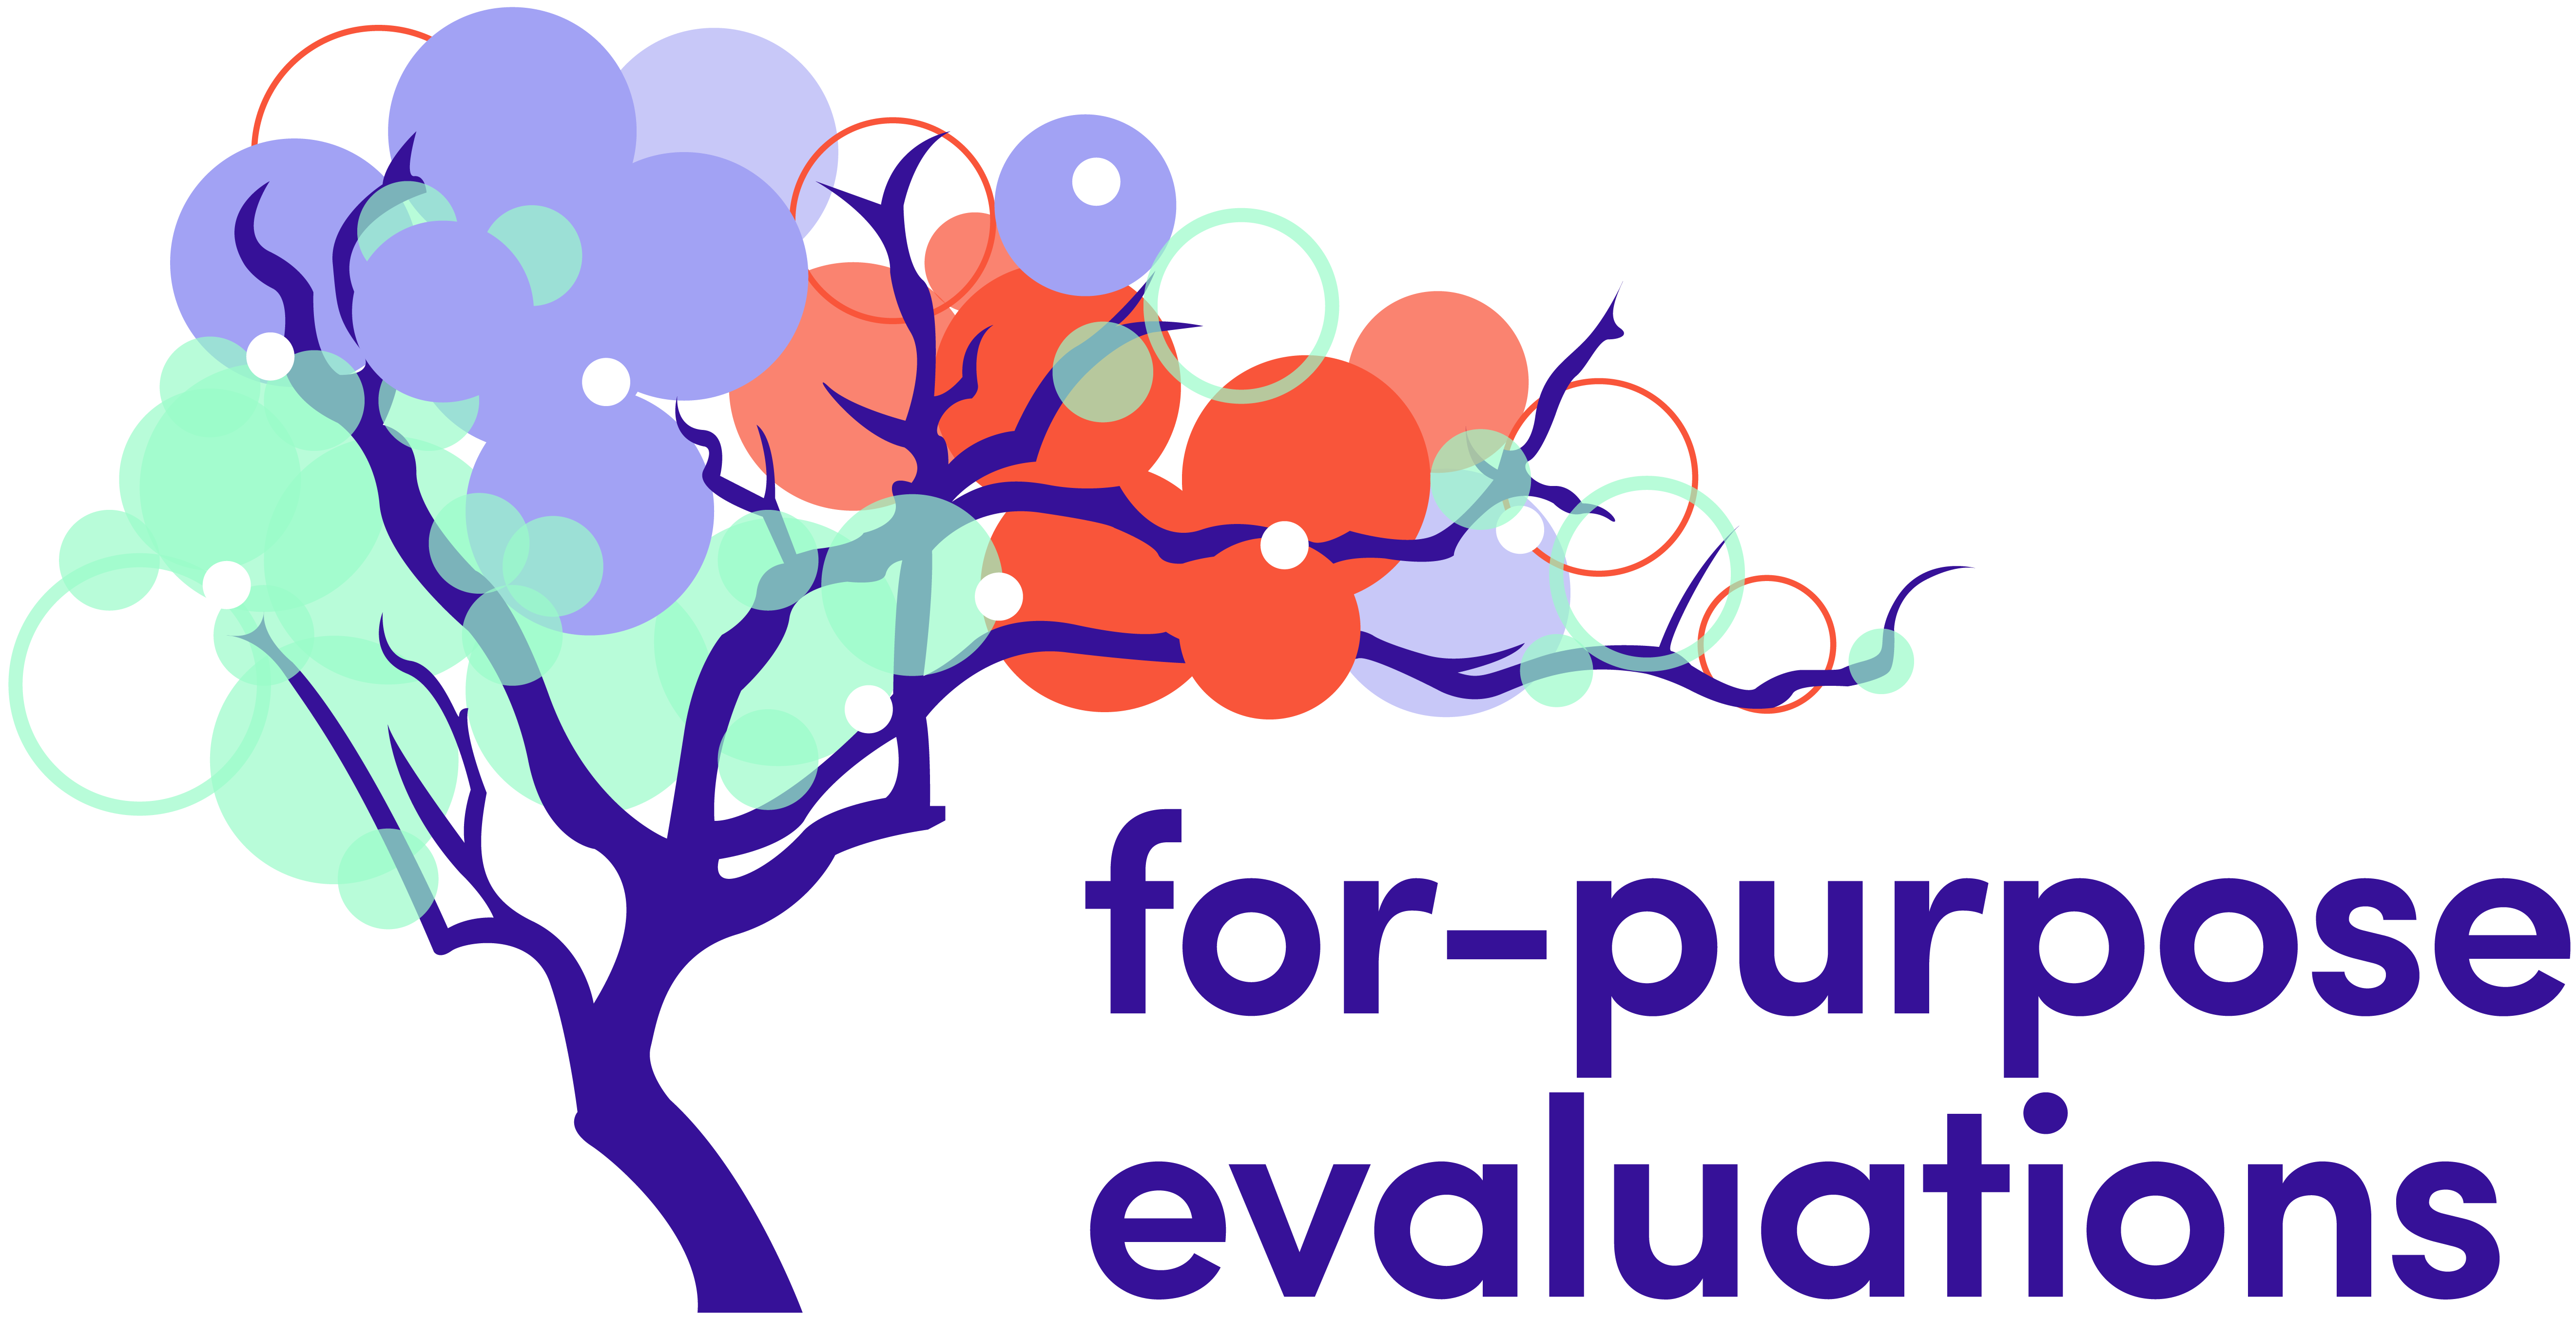 For-Purpose Evaluations